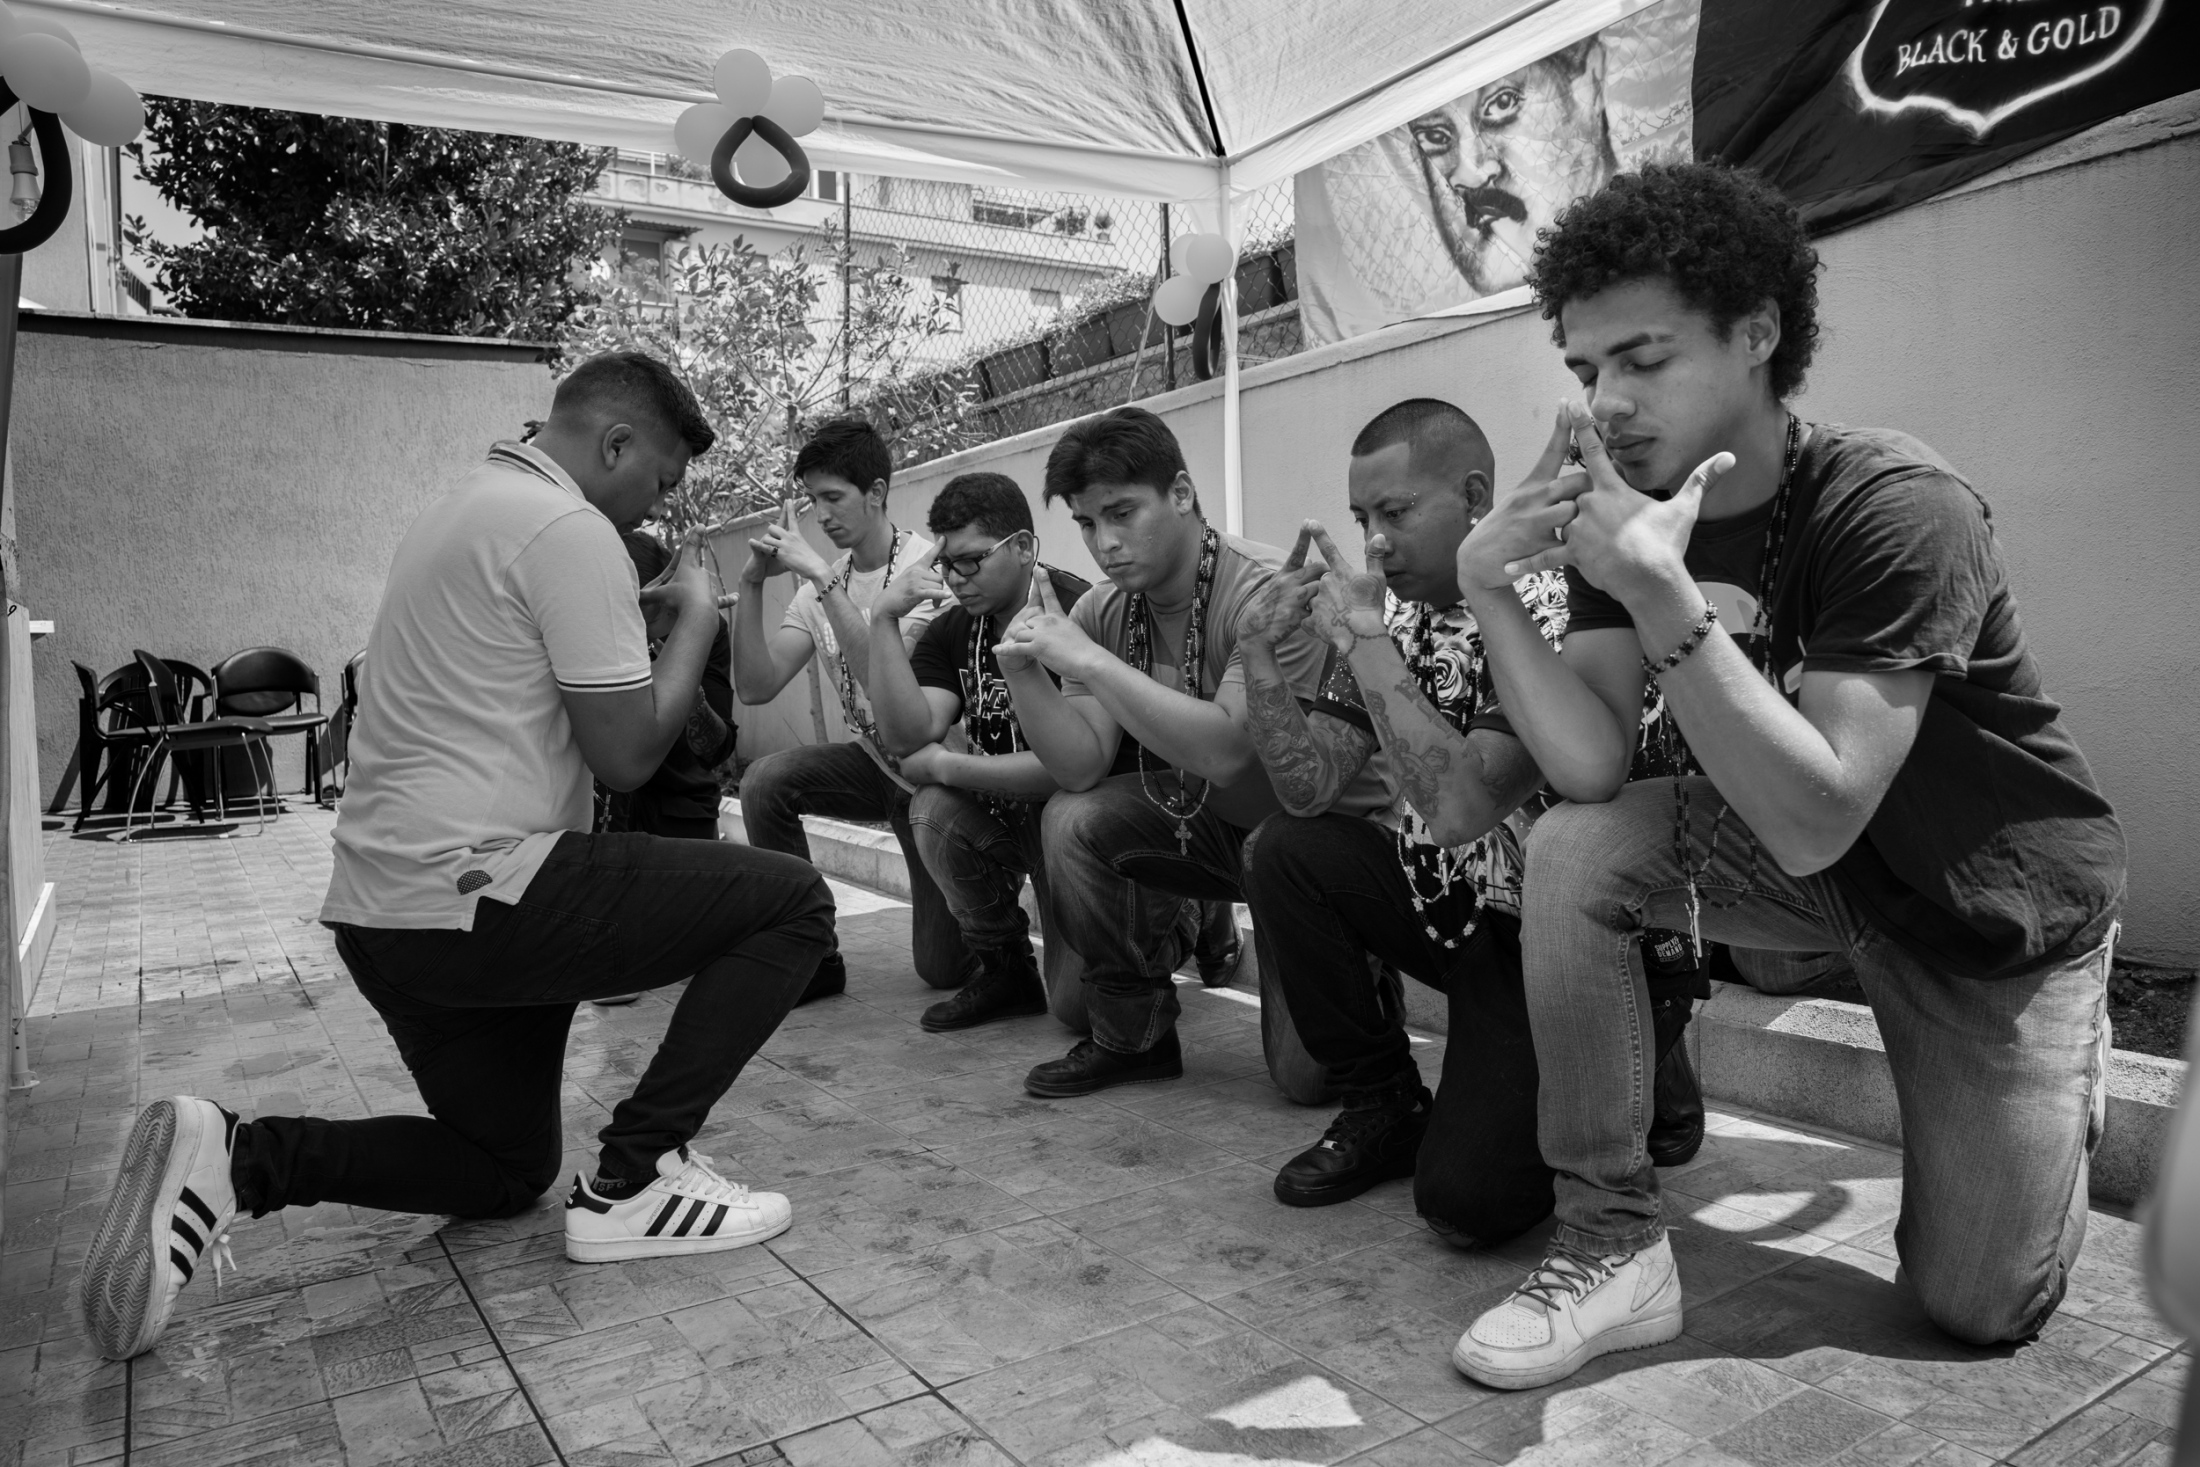 Latin Kings members pray on their knees during an important meeting in Rome. some of the topics discussed include teaching respect and love for gang members as well as telling them to study their literature and follow the steps that can lead them to be not only successful leaders within the gang but also outside of it as humans in society.